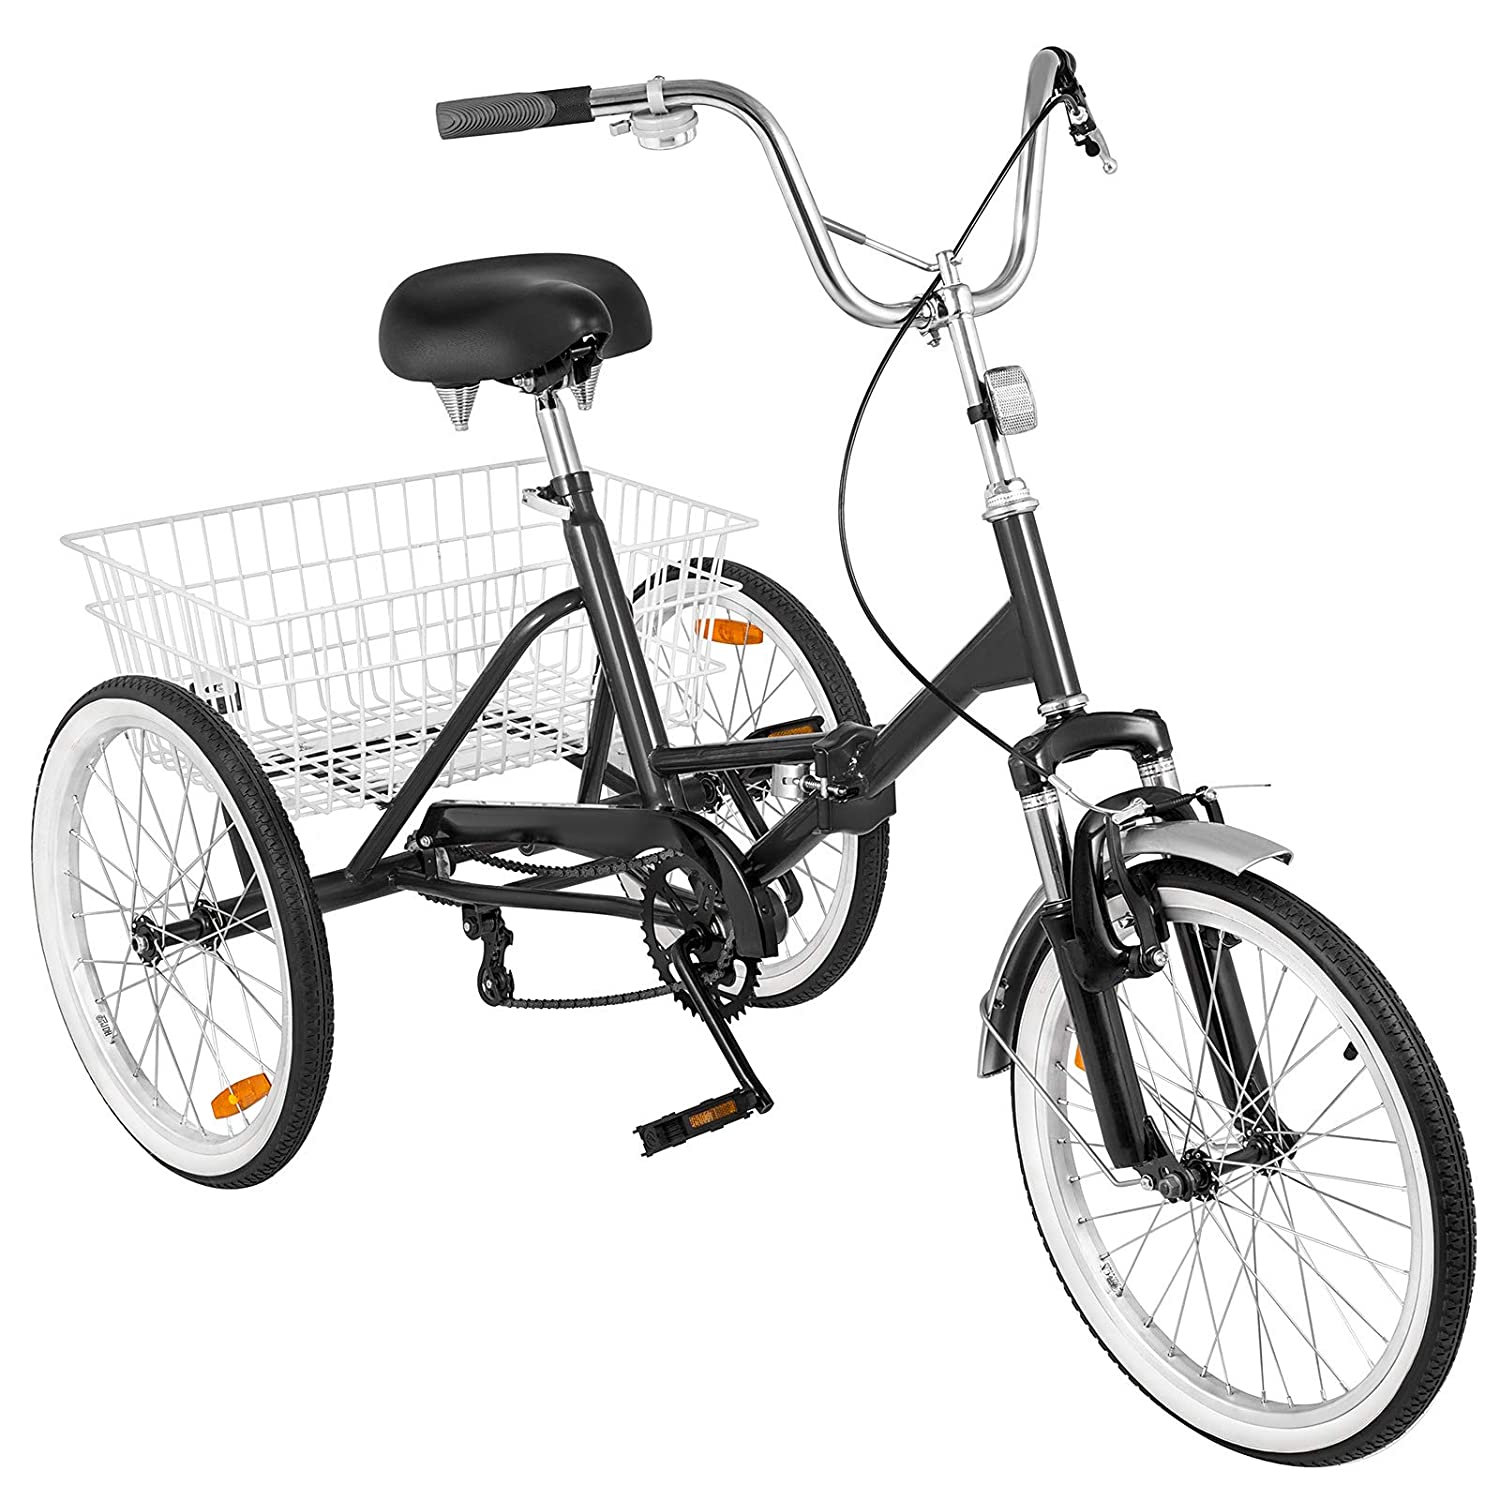 Associated product image for VEVOR 20 Inch Adult Tricycle